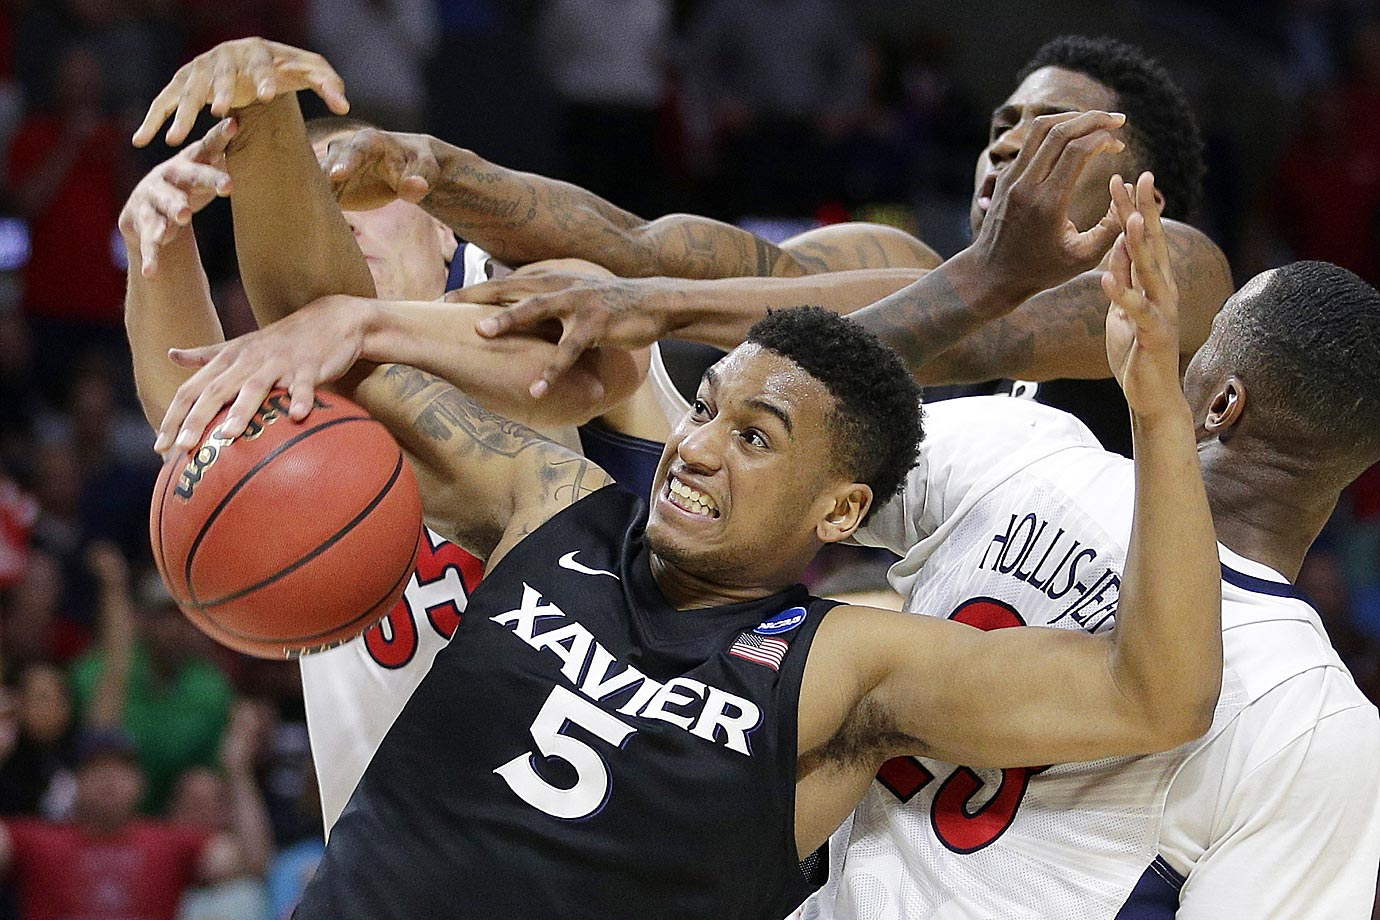 Trevon Bluiett of Xavier gets tangled against Arizona during the regional semifinal.